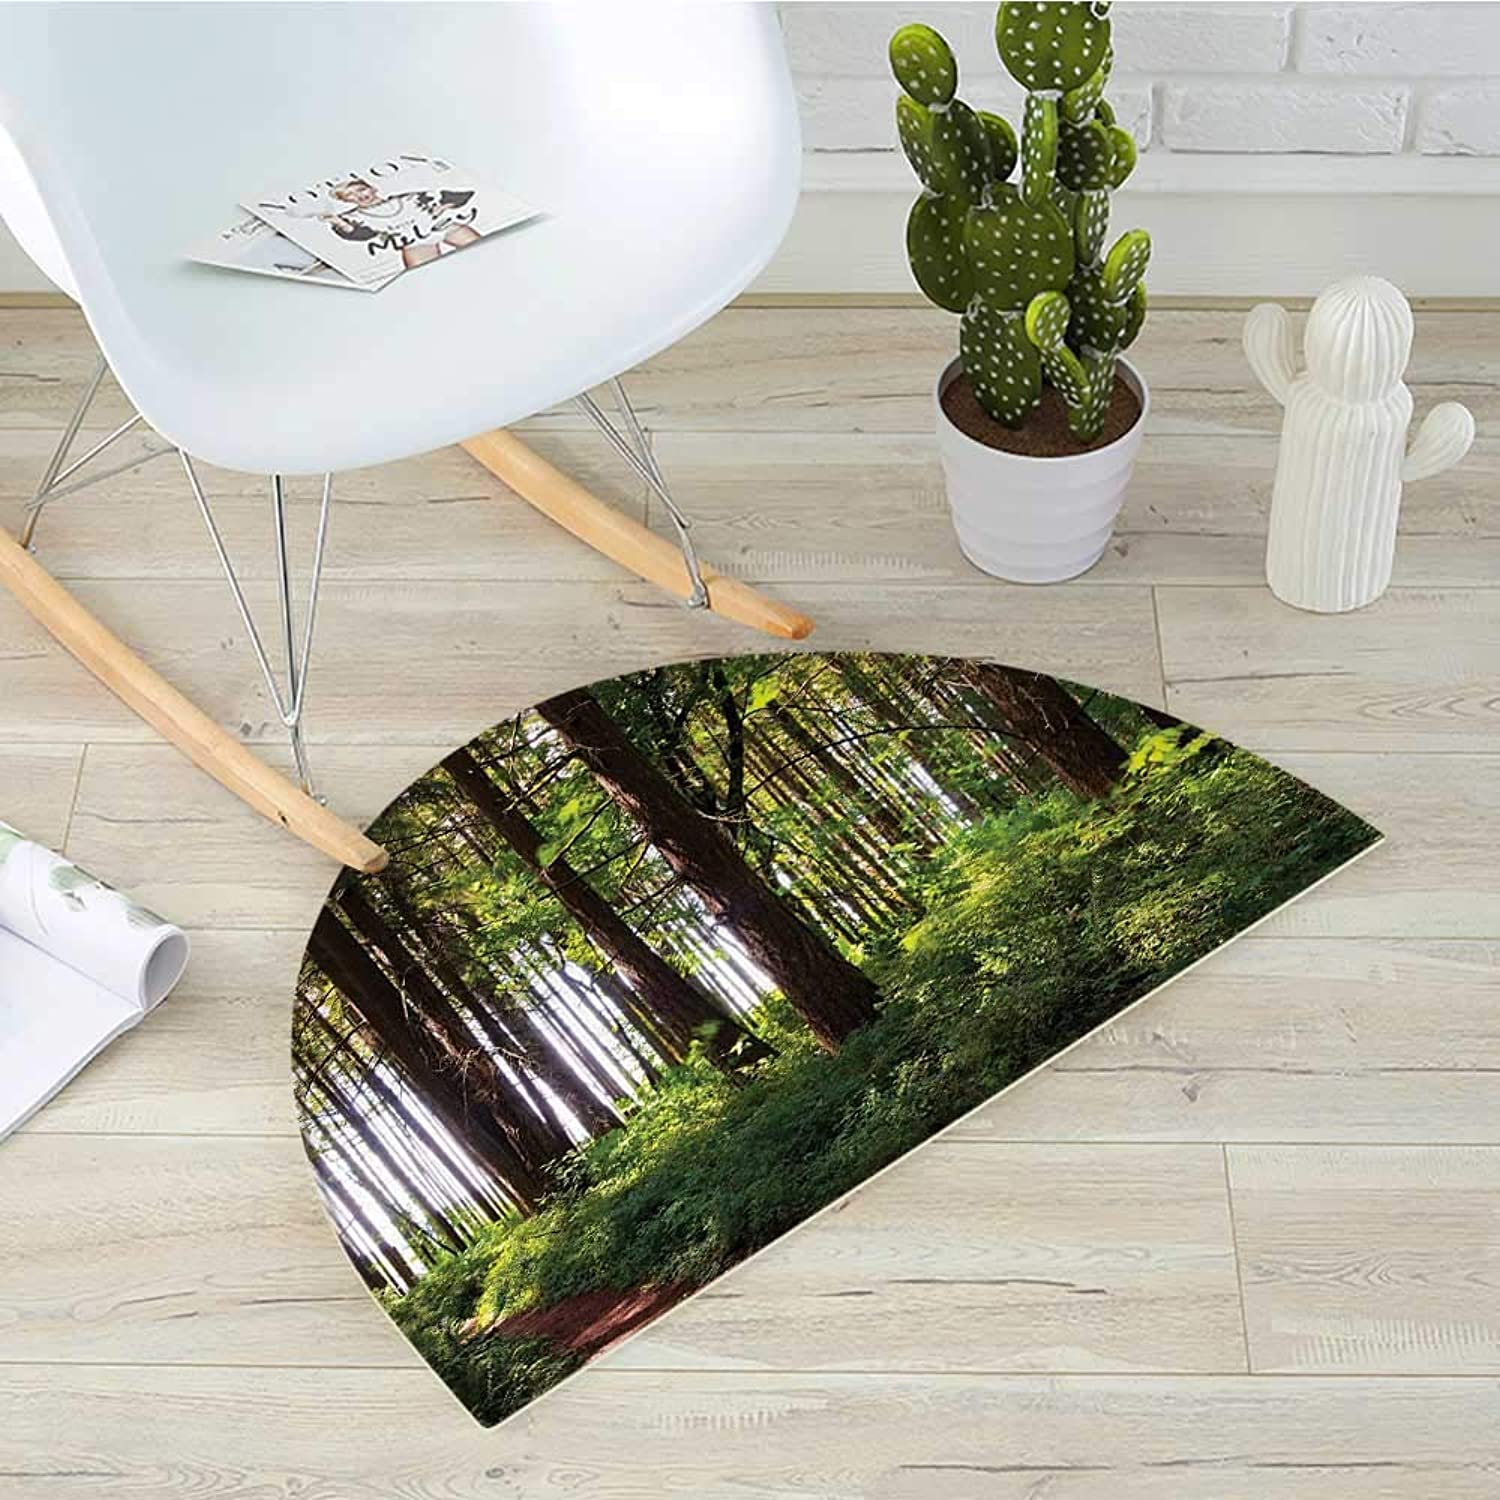 Forest Semicircle Doormat Pathway in a Shady Forest of Bushes and Thick Trunks Grass Unique Wild Life Scenery Halfmoon doormats H 39.3  xD 59  Green Brown